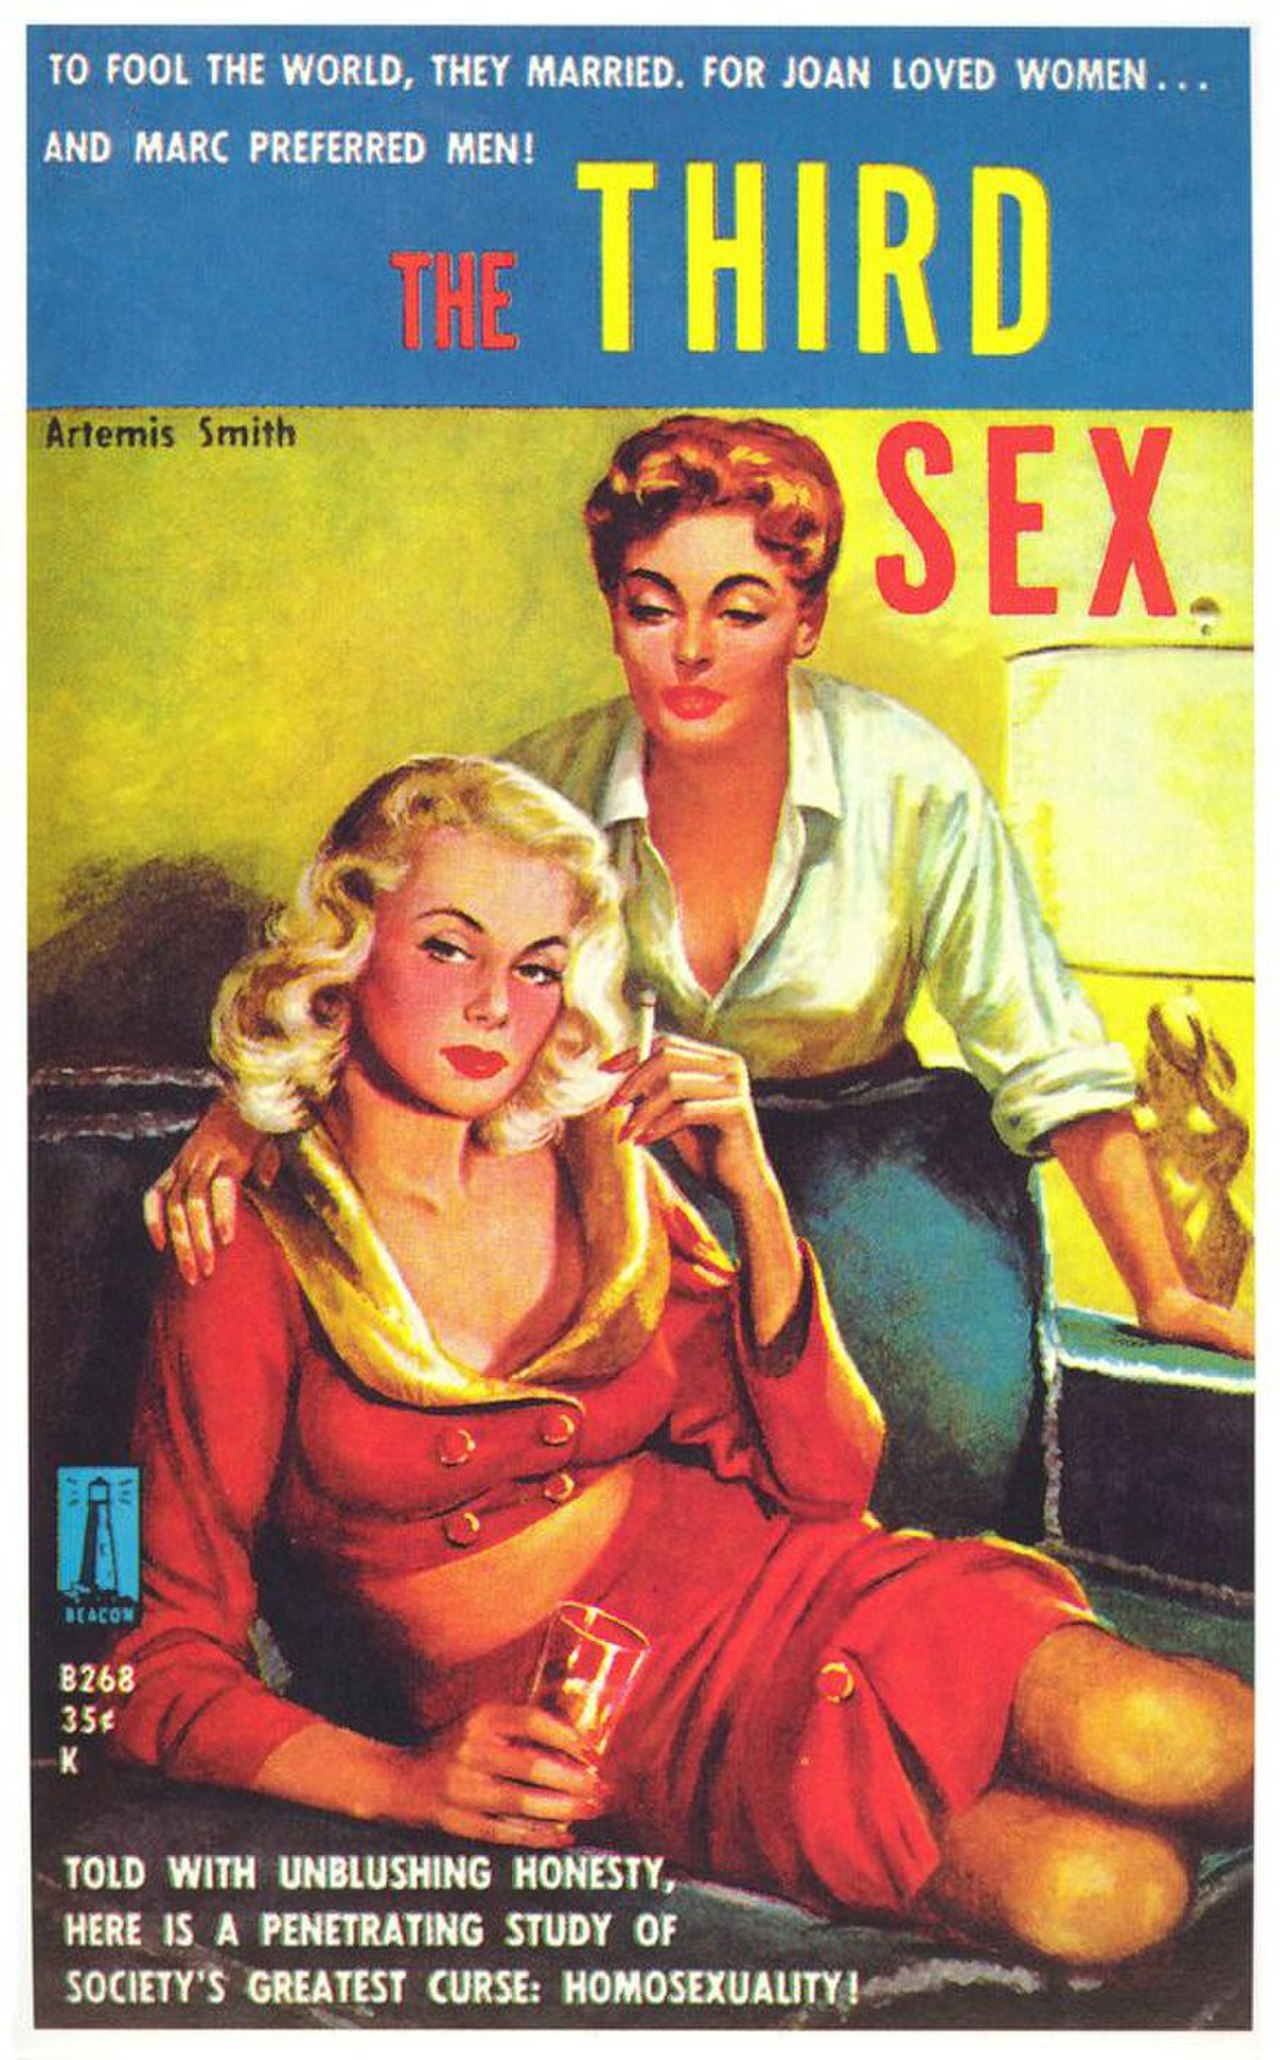 http://upload.wikimedia.org/wikipedia/commons/a/a6/Thirdsex_bookcover_1959.jpg